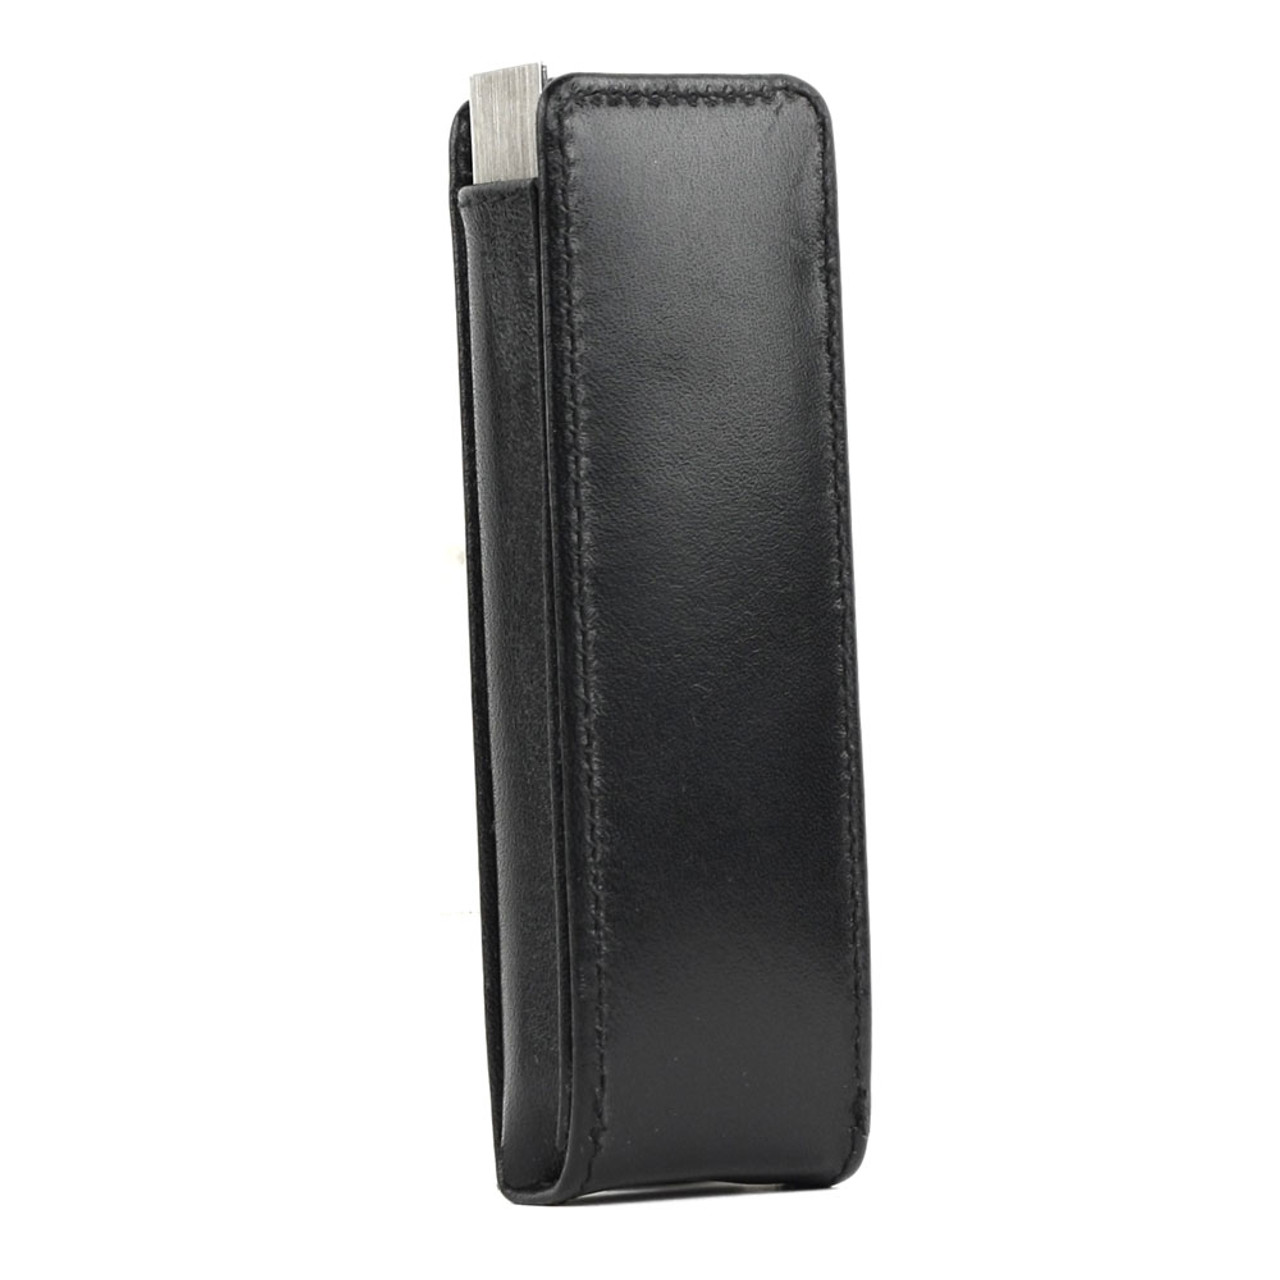 Springfield XDS 45 Magazine Pocket Protector